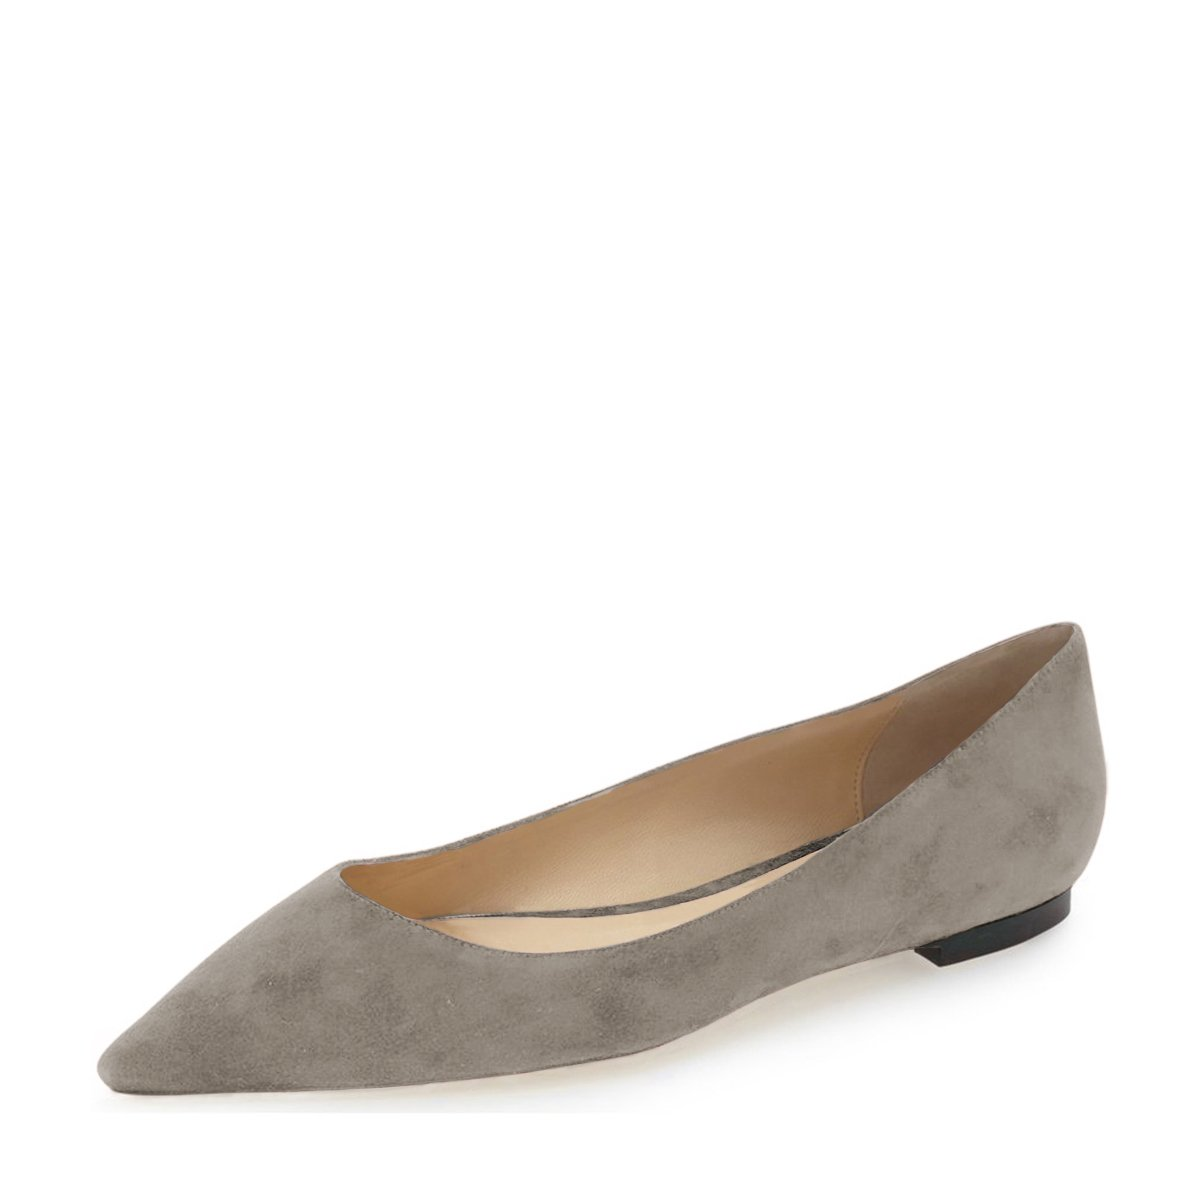 YDN Women Classic Pointy Toe Flats Suede Casual Shoes Low Cut Slip On Soft B01N1FMD1Q 12 B(M) US|Taupe